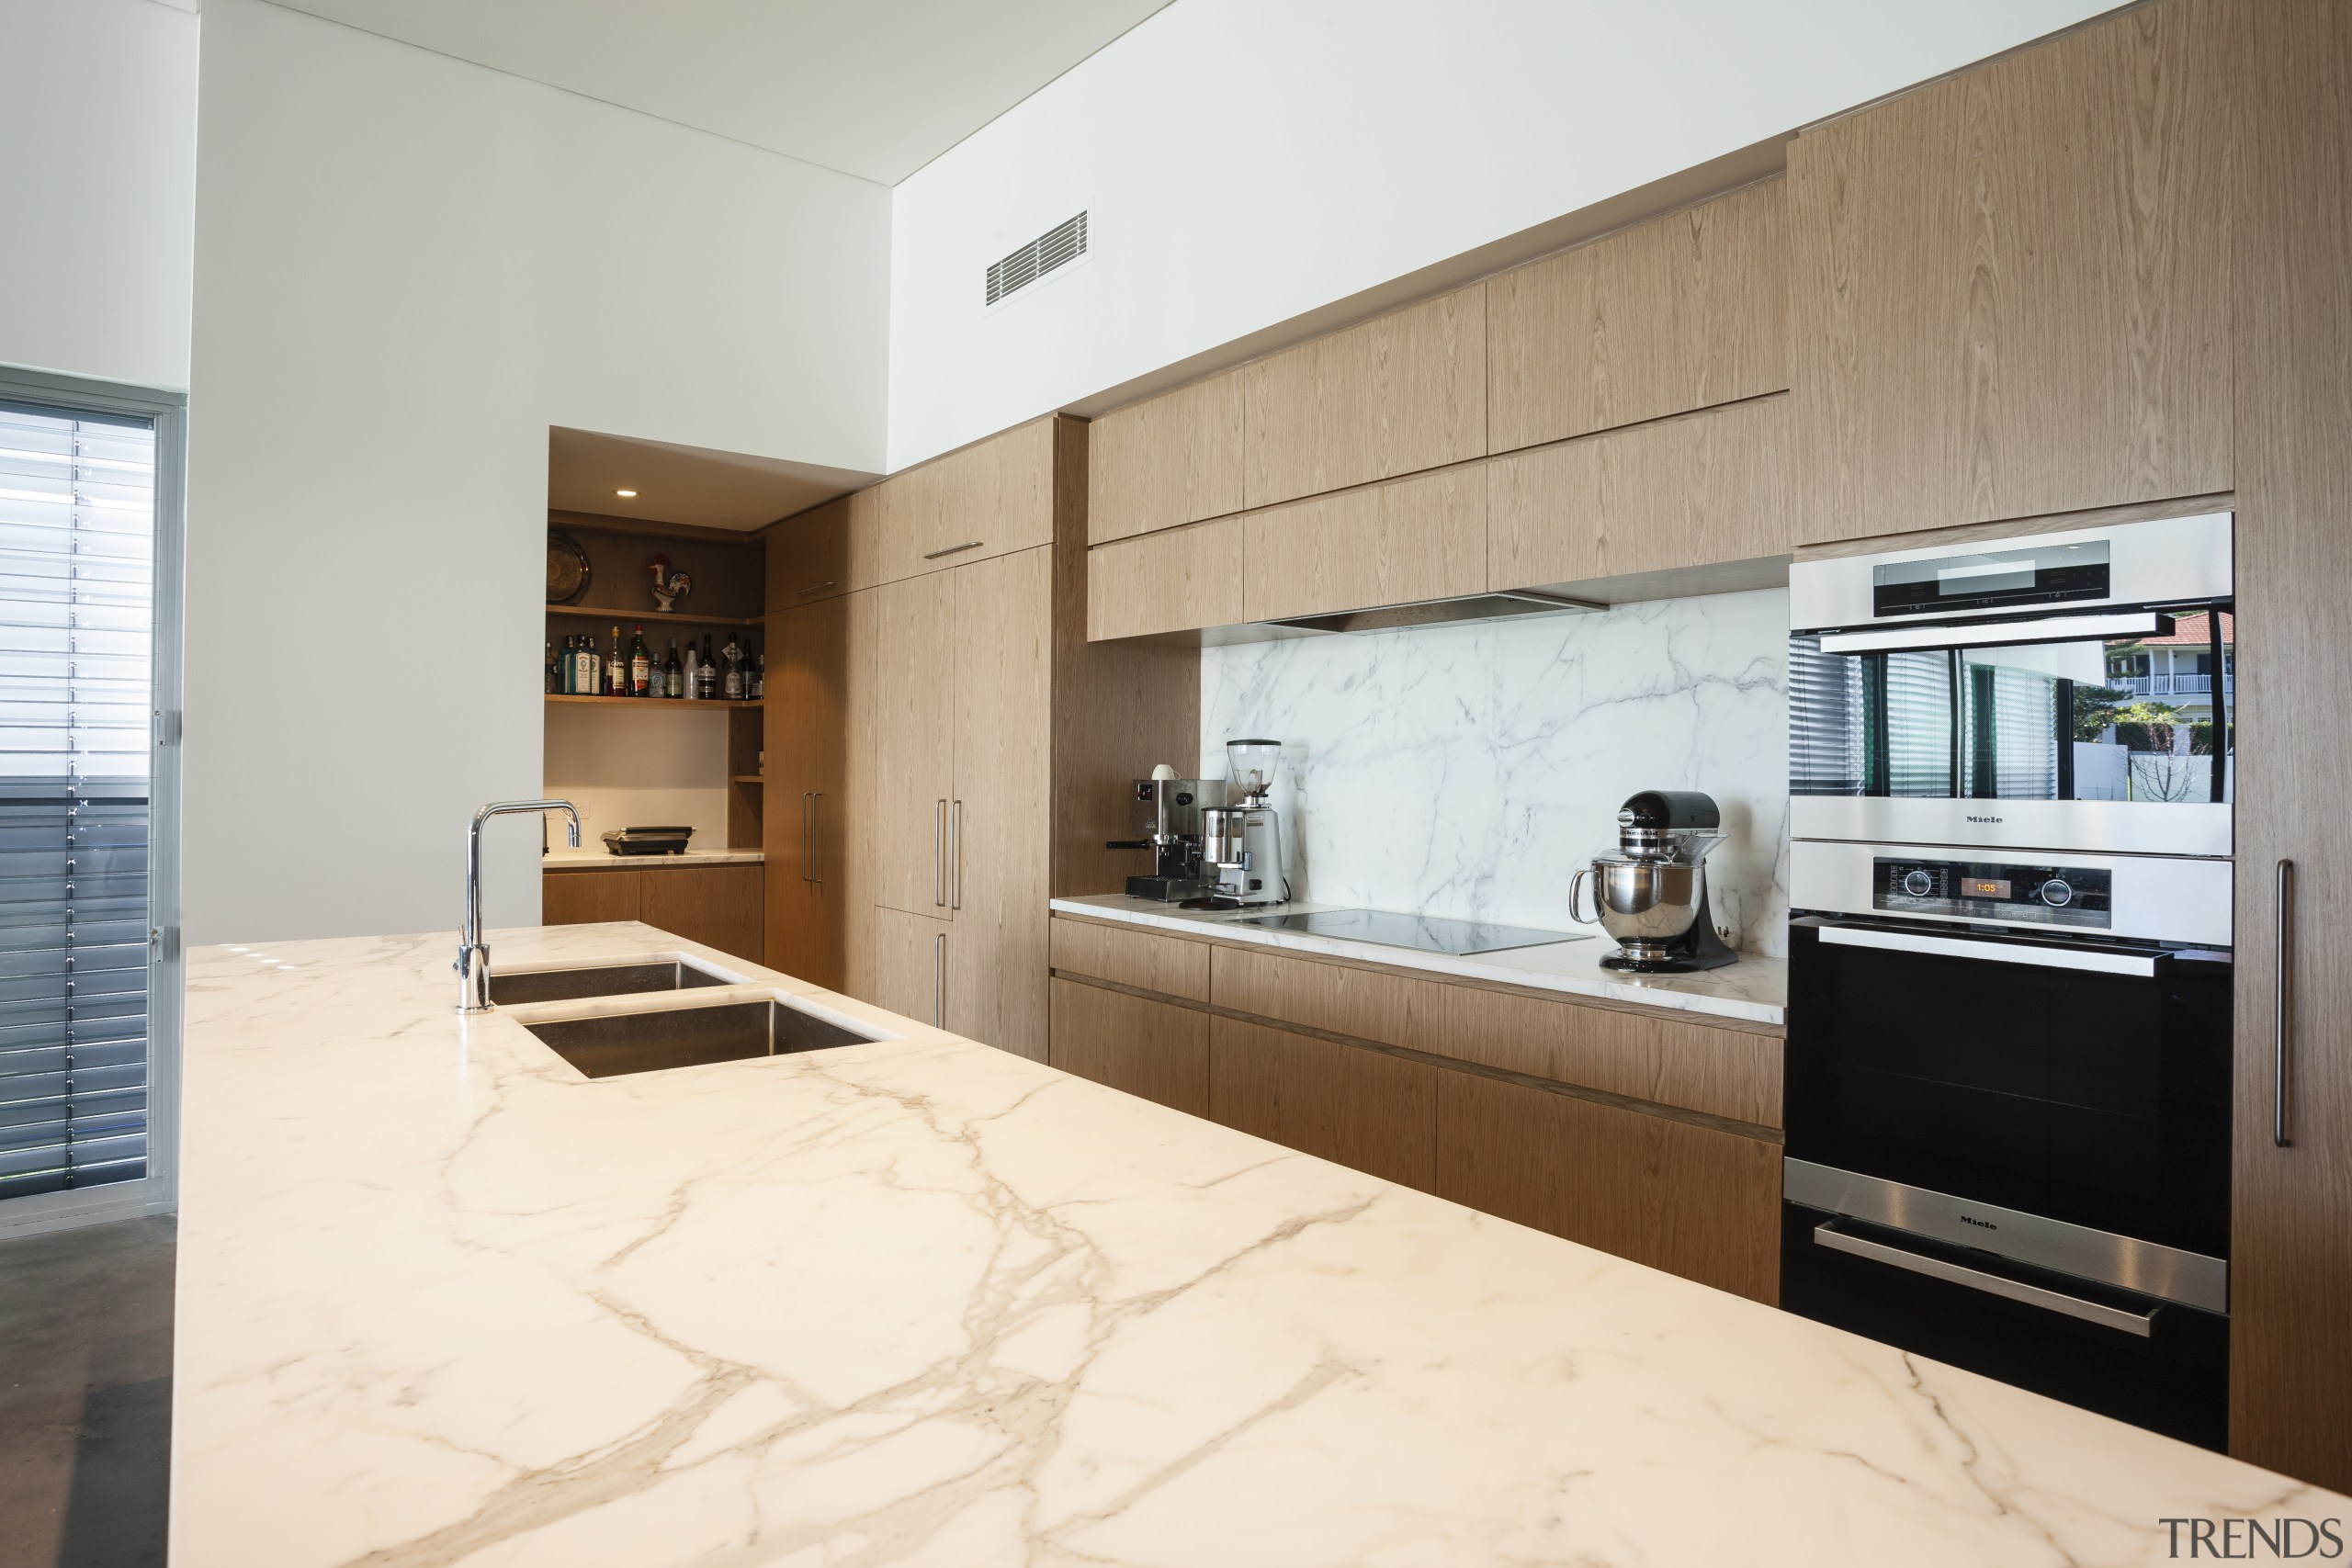 Kitchen area with Oven and sink. - Kitchen cabinetry, countertop, cuisine classique, interior design, kitchen, real estate, white